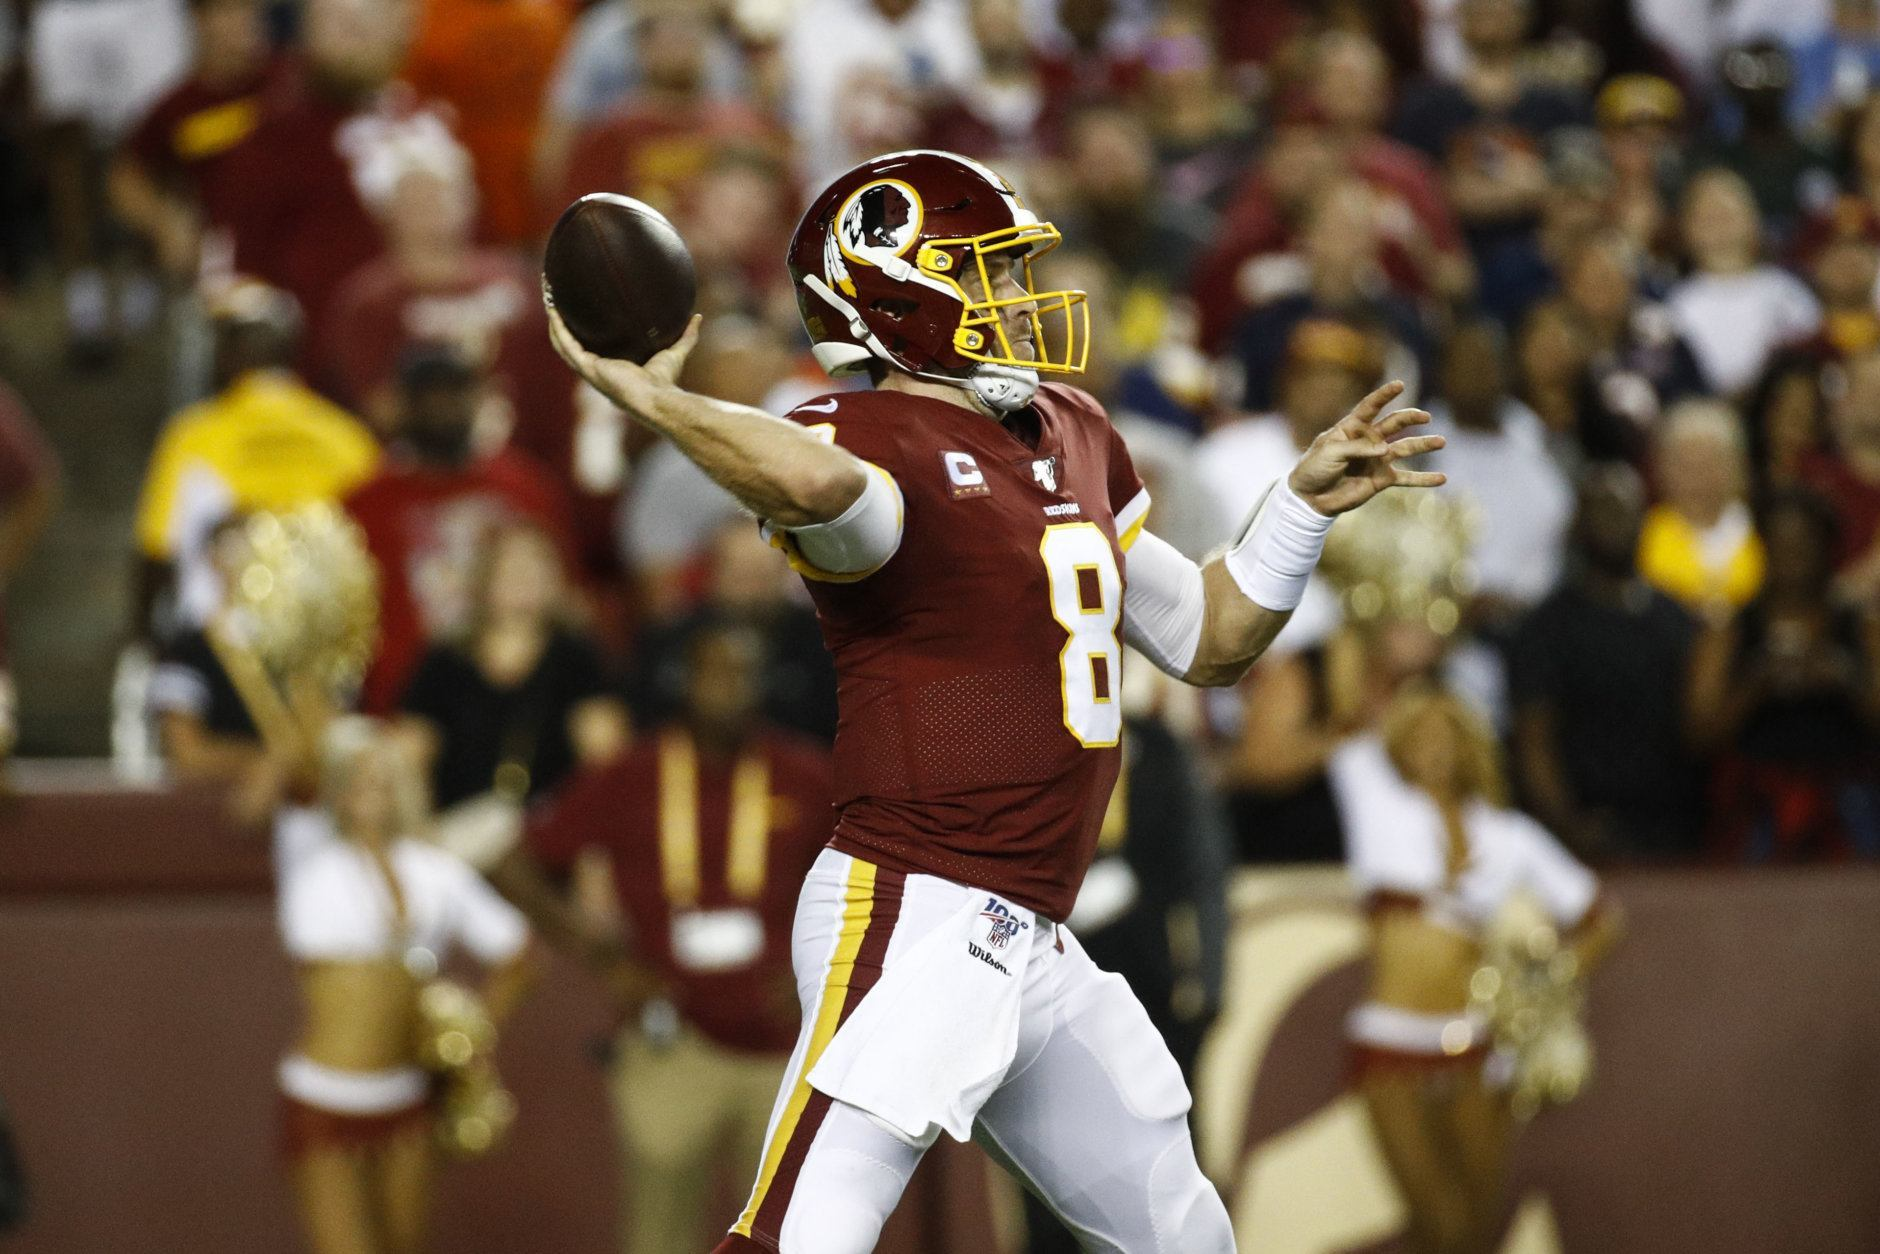 Washington Redskins quarterback Case Keenum (8) throws during the first half of an NFL football game against the Chicago Bears, Monday, Sept. 23, 2019, in Landover, Md. (AP Photo/Patrick Semansky)